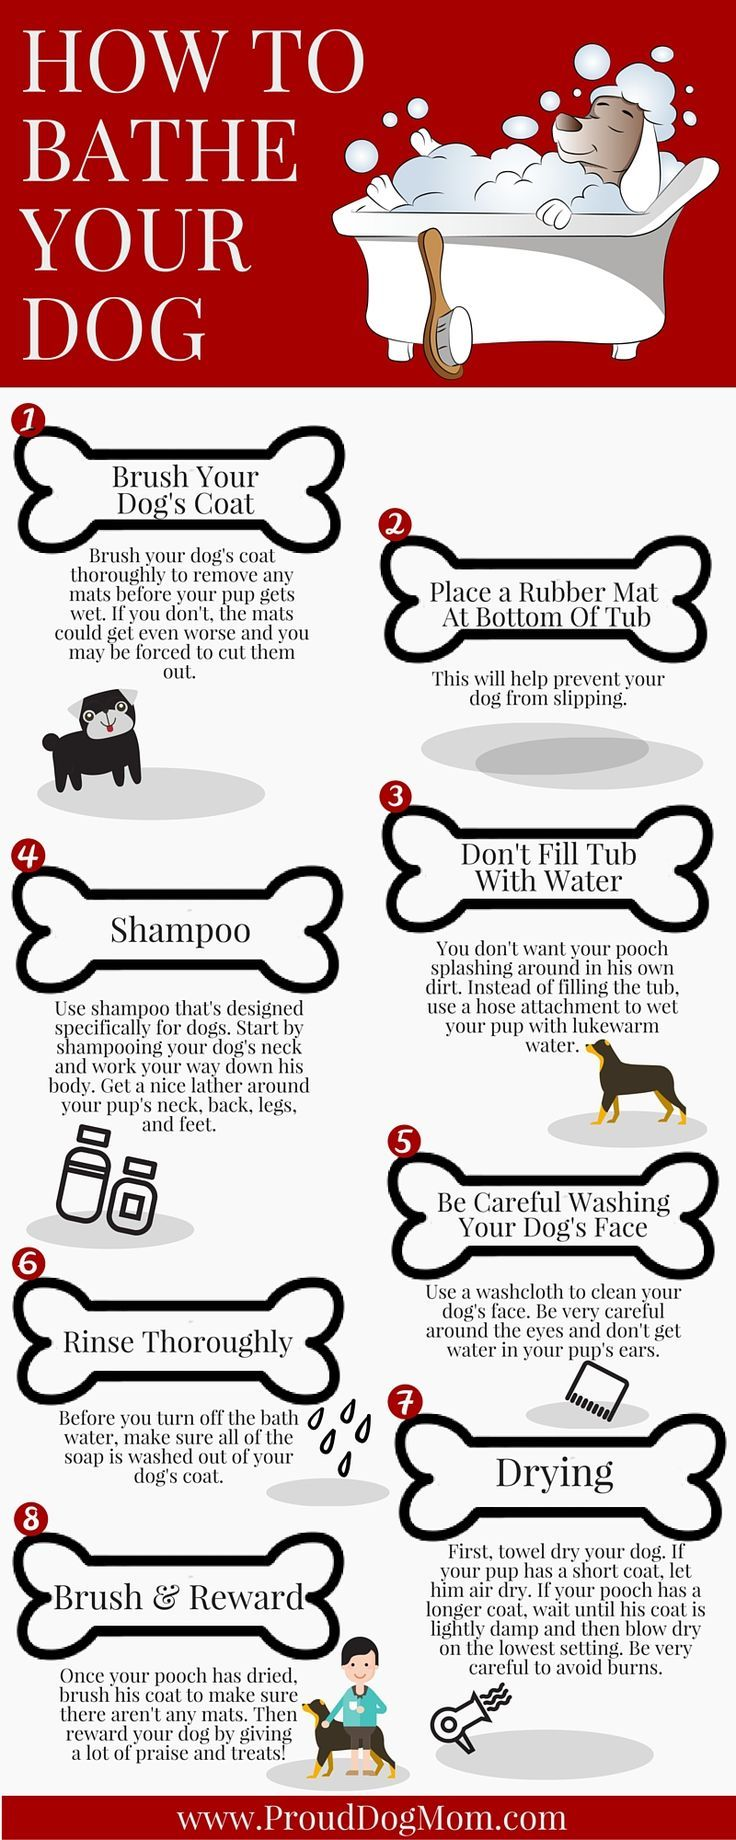 How to Bathe a Dog in a Shower foto